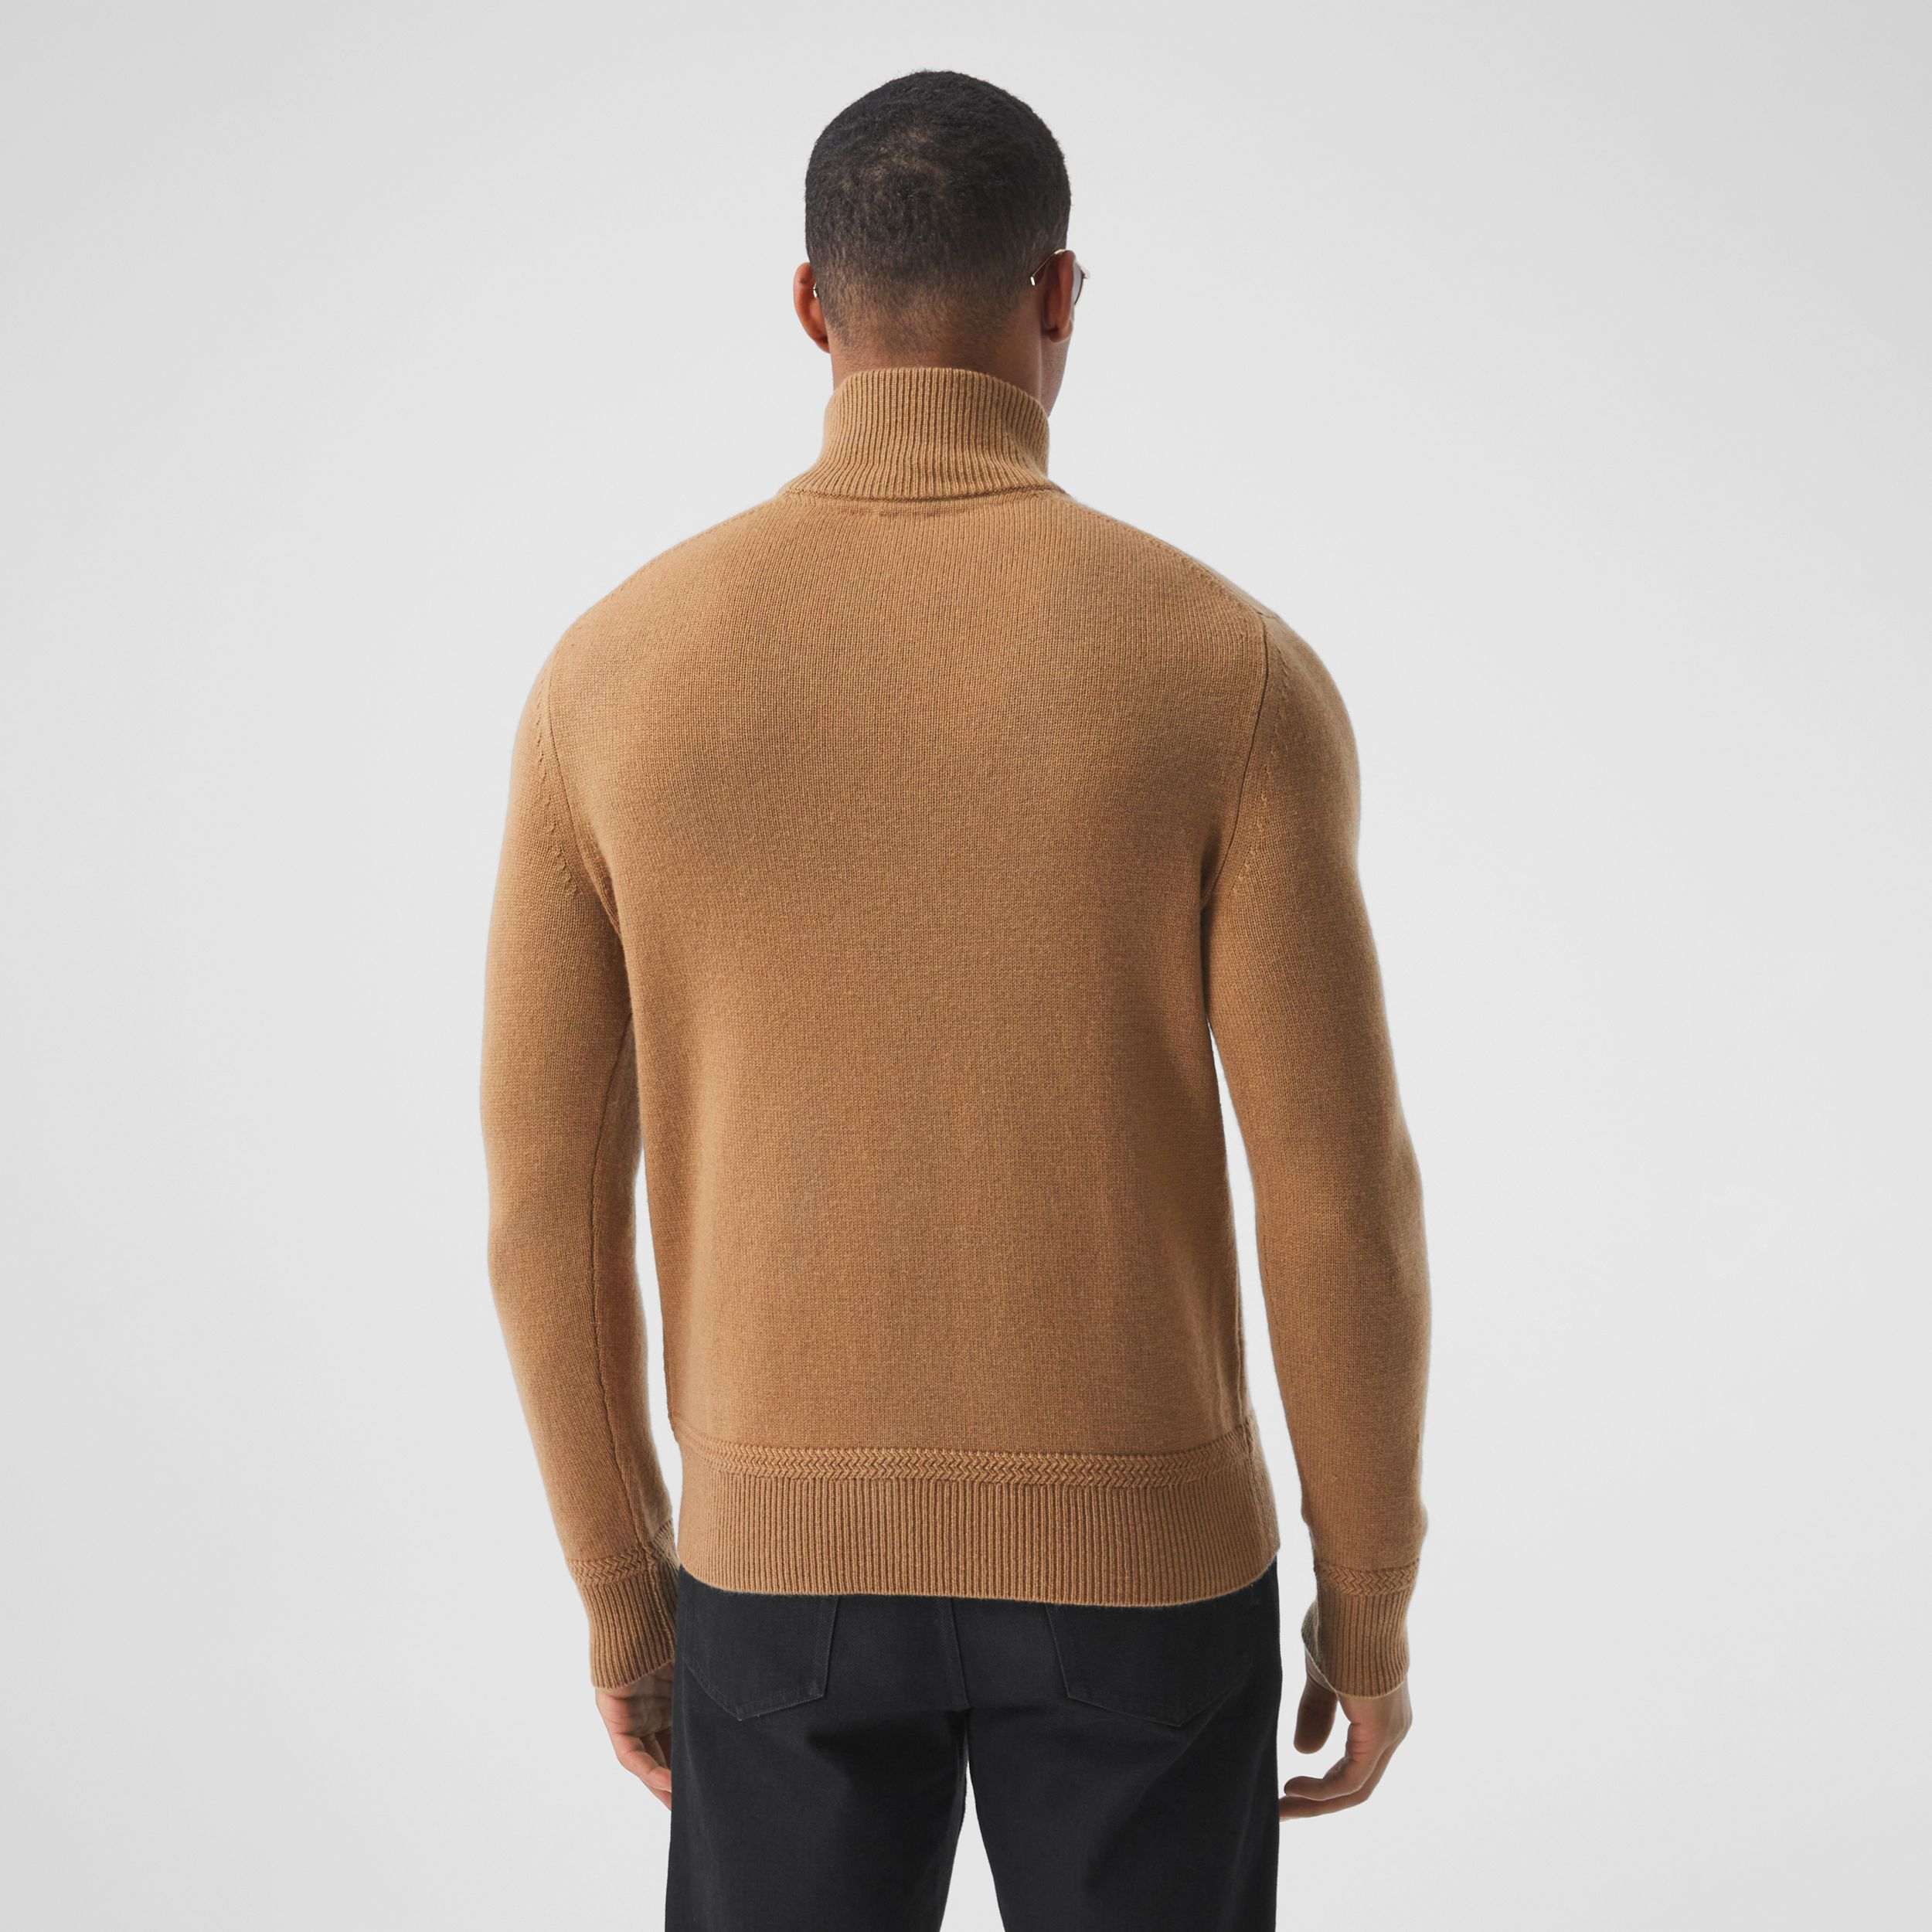 Monogram Motif Cashmere Funnel Neck Sweater in Camel - Men | Burberry - 3